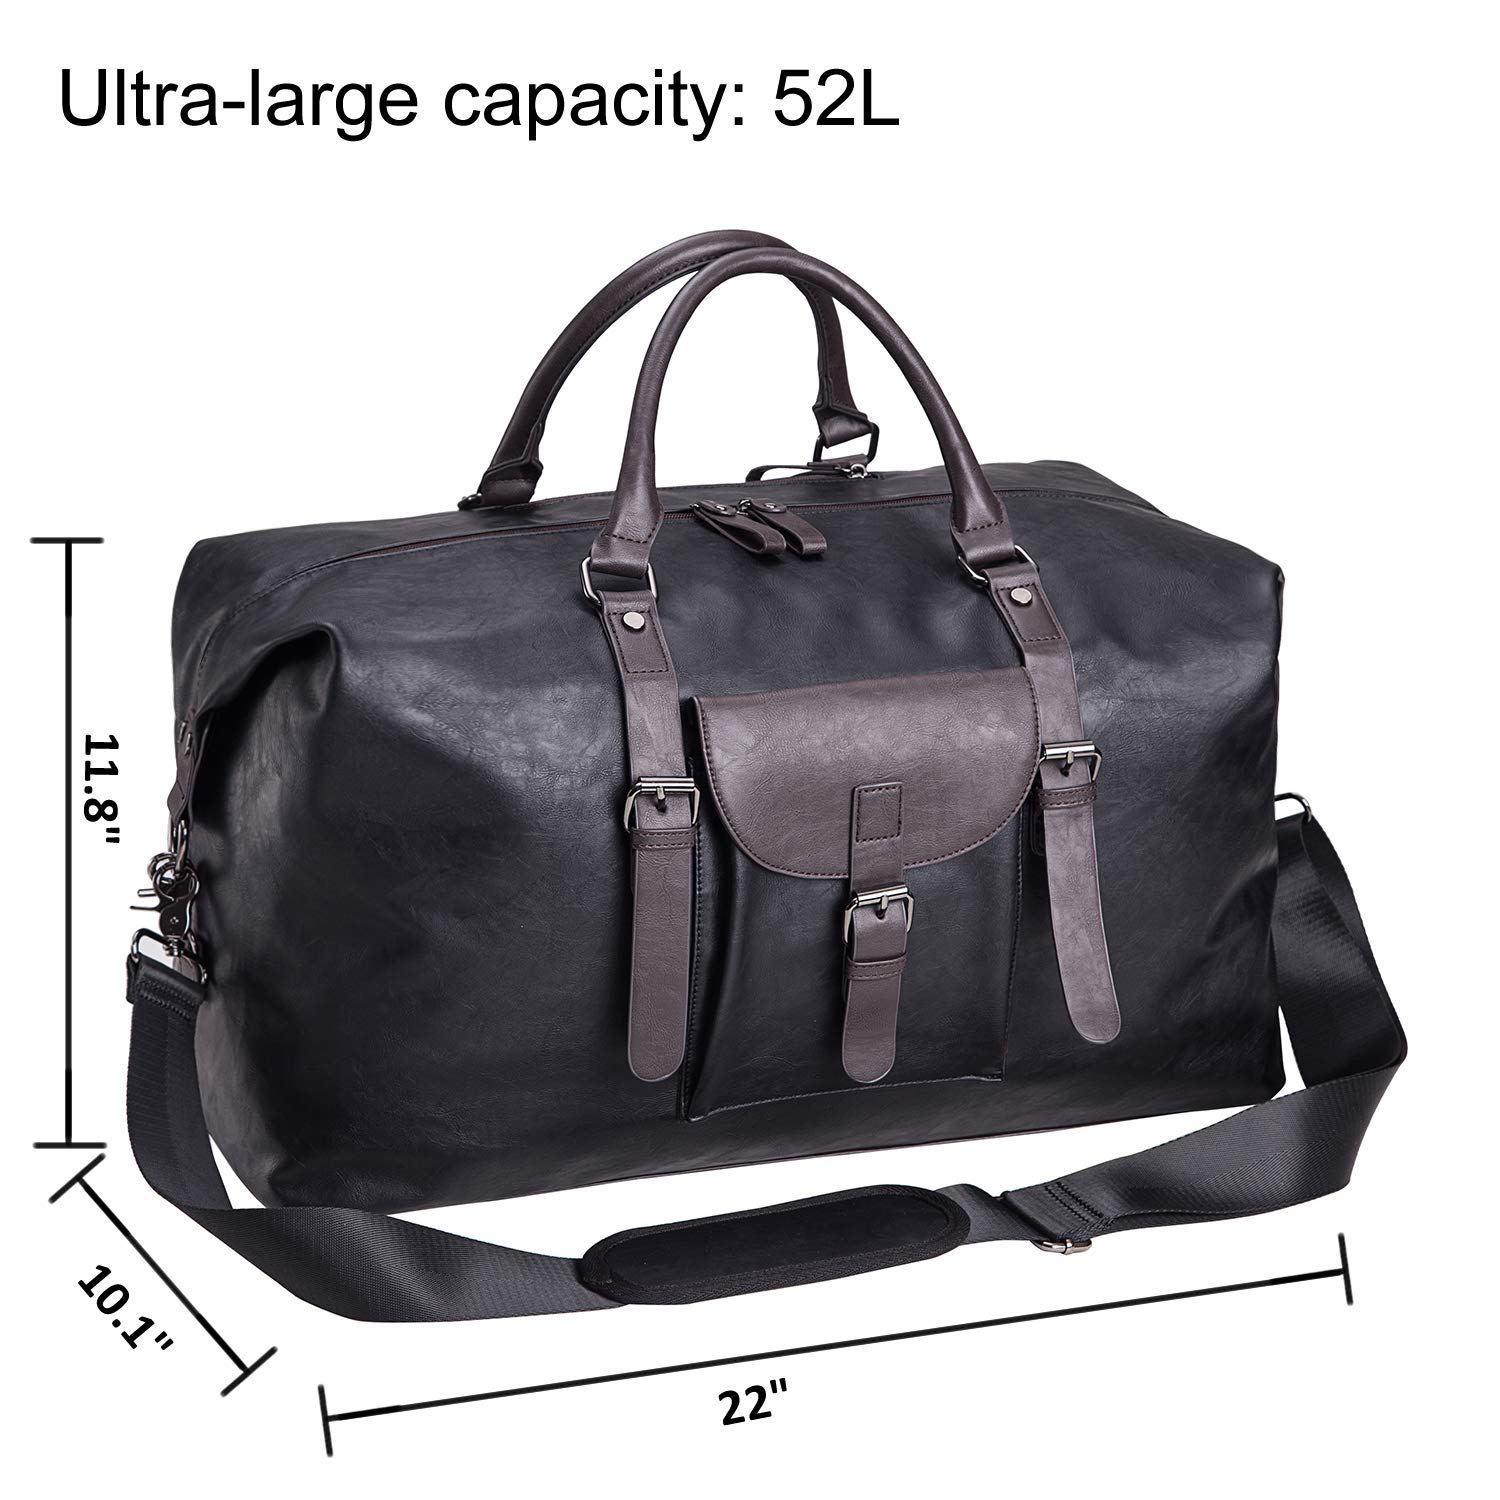 d80b10d94 Amazon.com | Oversized Leather Travel Duffel Bag Black,Weekender Overnight  Bag Waterproof Leather Large Carry On Bag Travel Tote Duffel Bag for Men or  ...